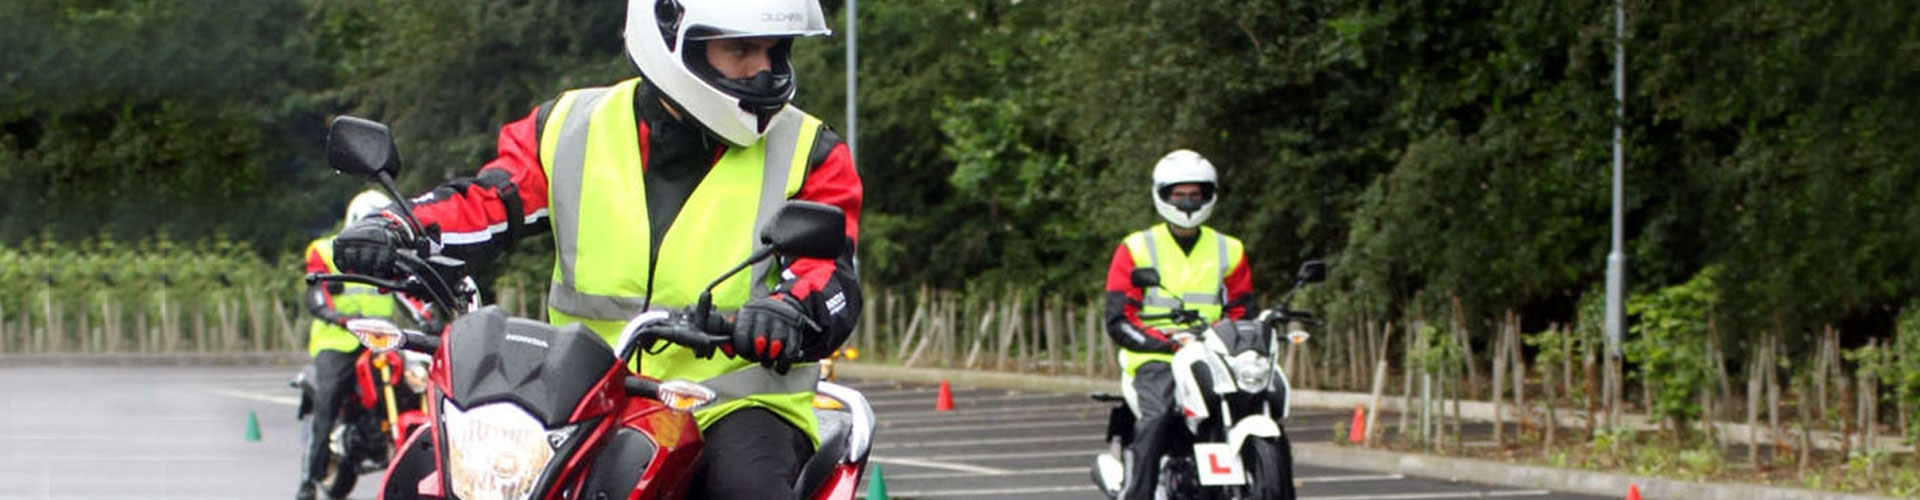 Wigan Motorcycle Riding School